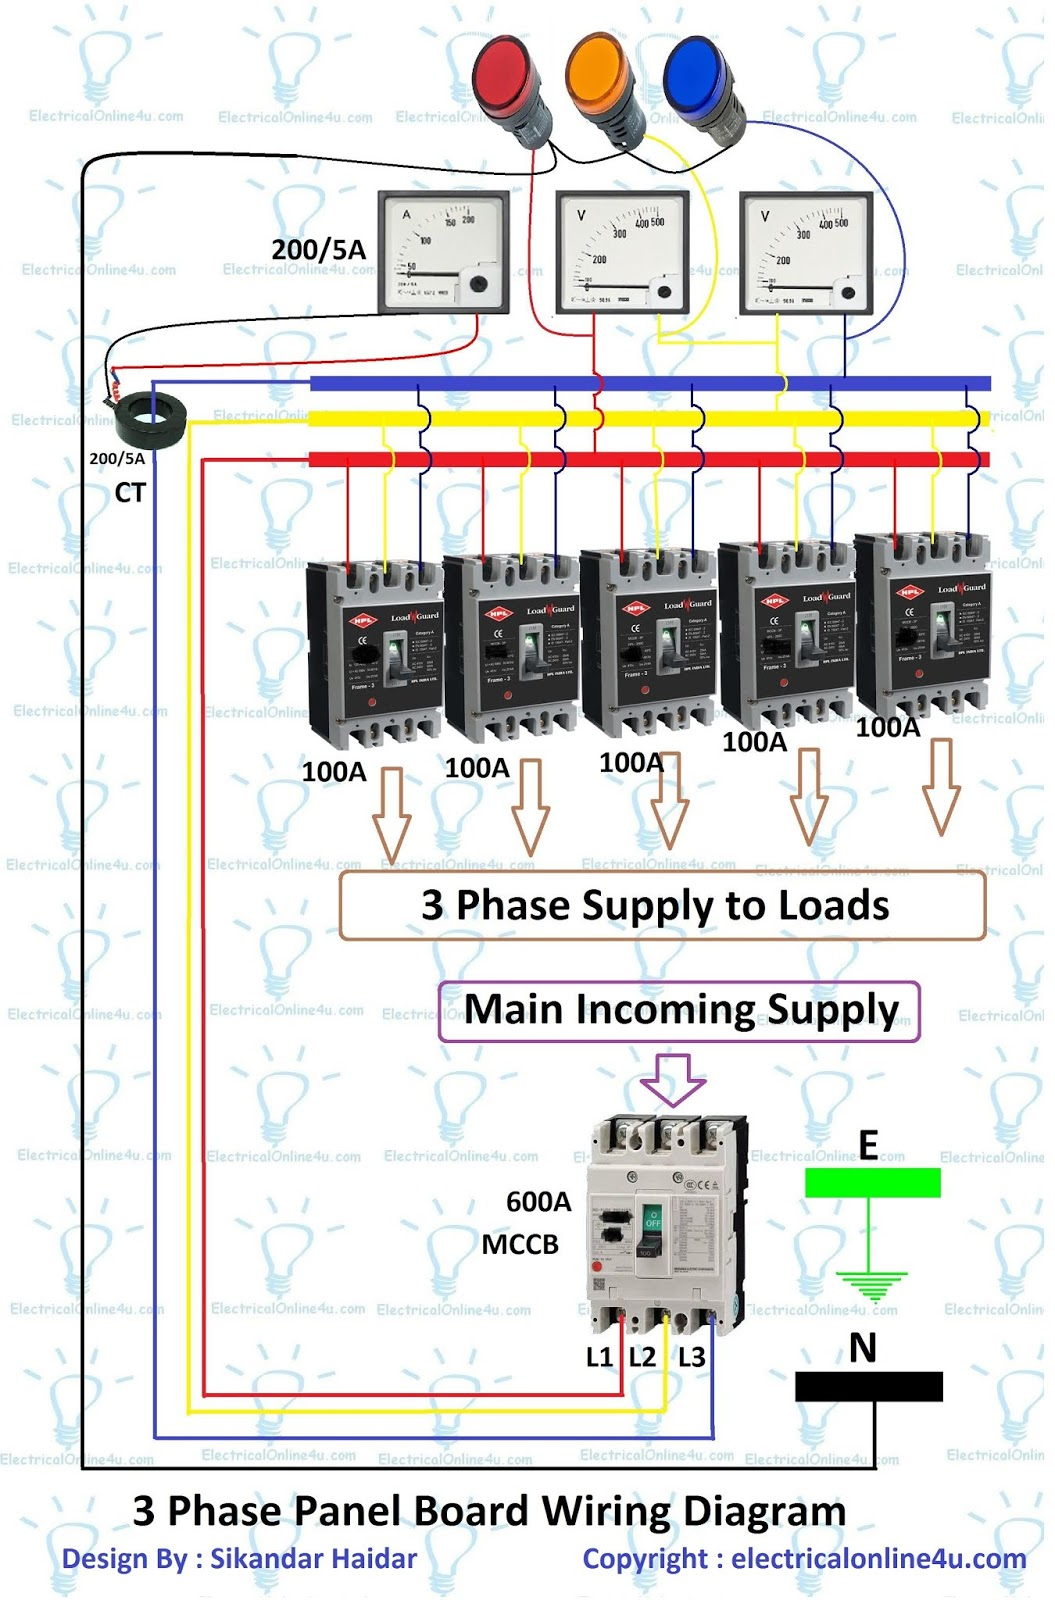 3 phase distribution board wiring diagram electrical tutorials 3 phase distribution board wiring diagram [ 1055 x 1600 Pixel ]